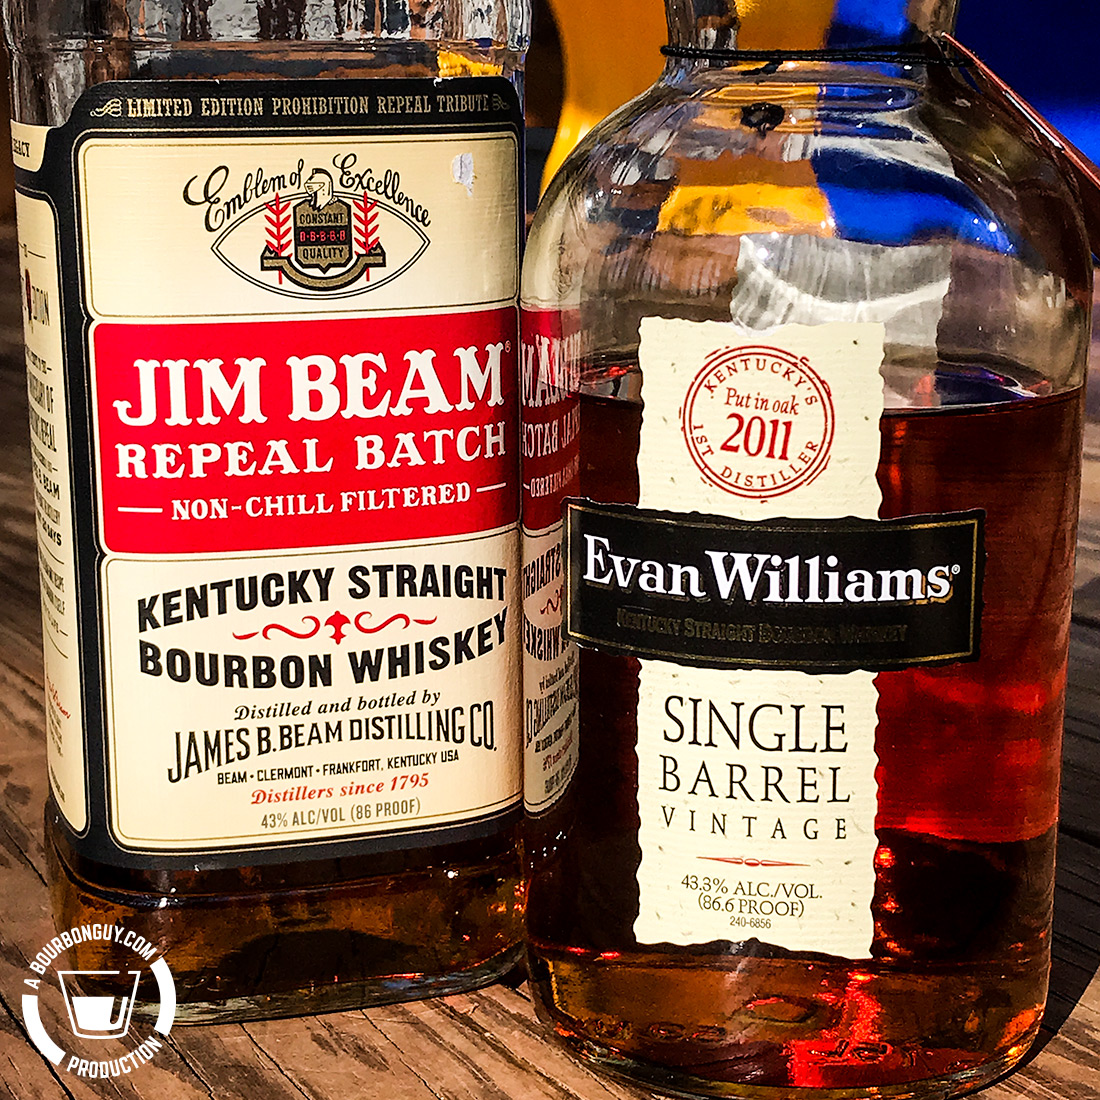 IMAGE: The front labels of Evan Williams Single Barrel Vintage 2011 and Jim Beam Repeal Batch